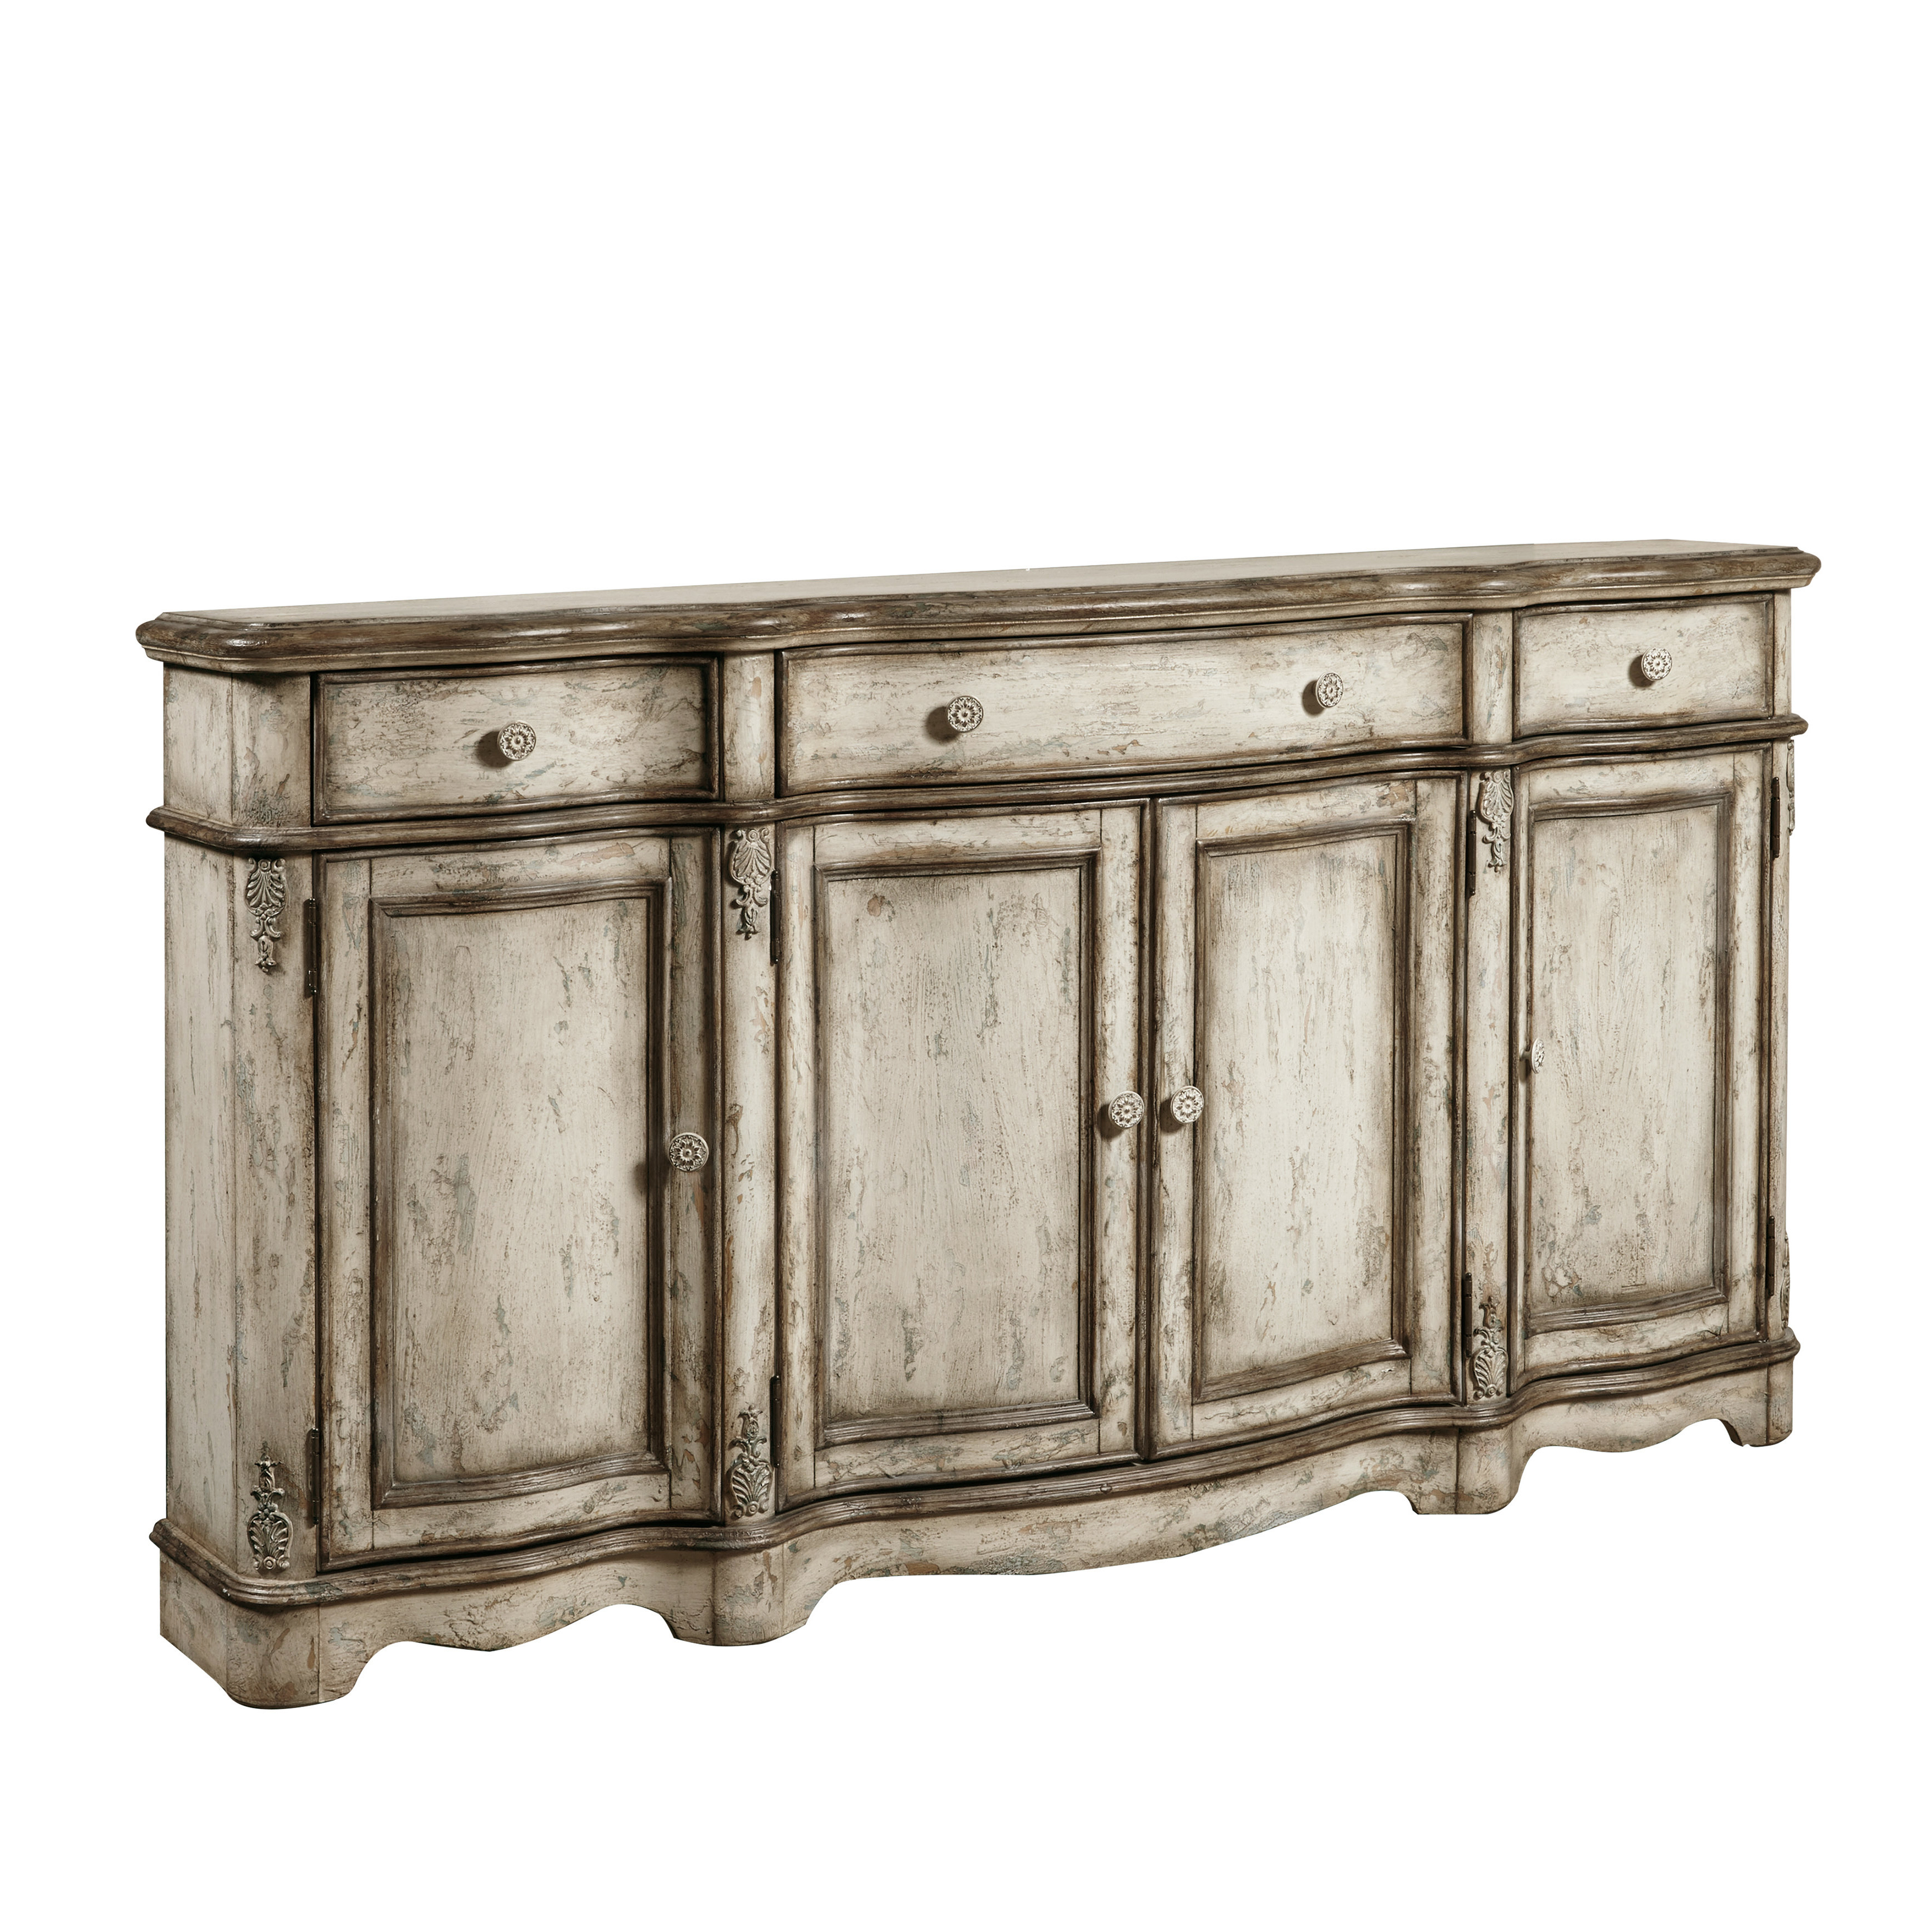 2019 Rutledge Sideboards Within Farmhouse & Rustic Distressed Finish Sideboards & Buffets (View 1 of 20)